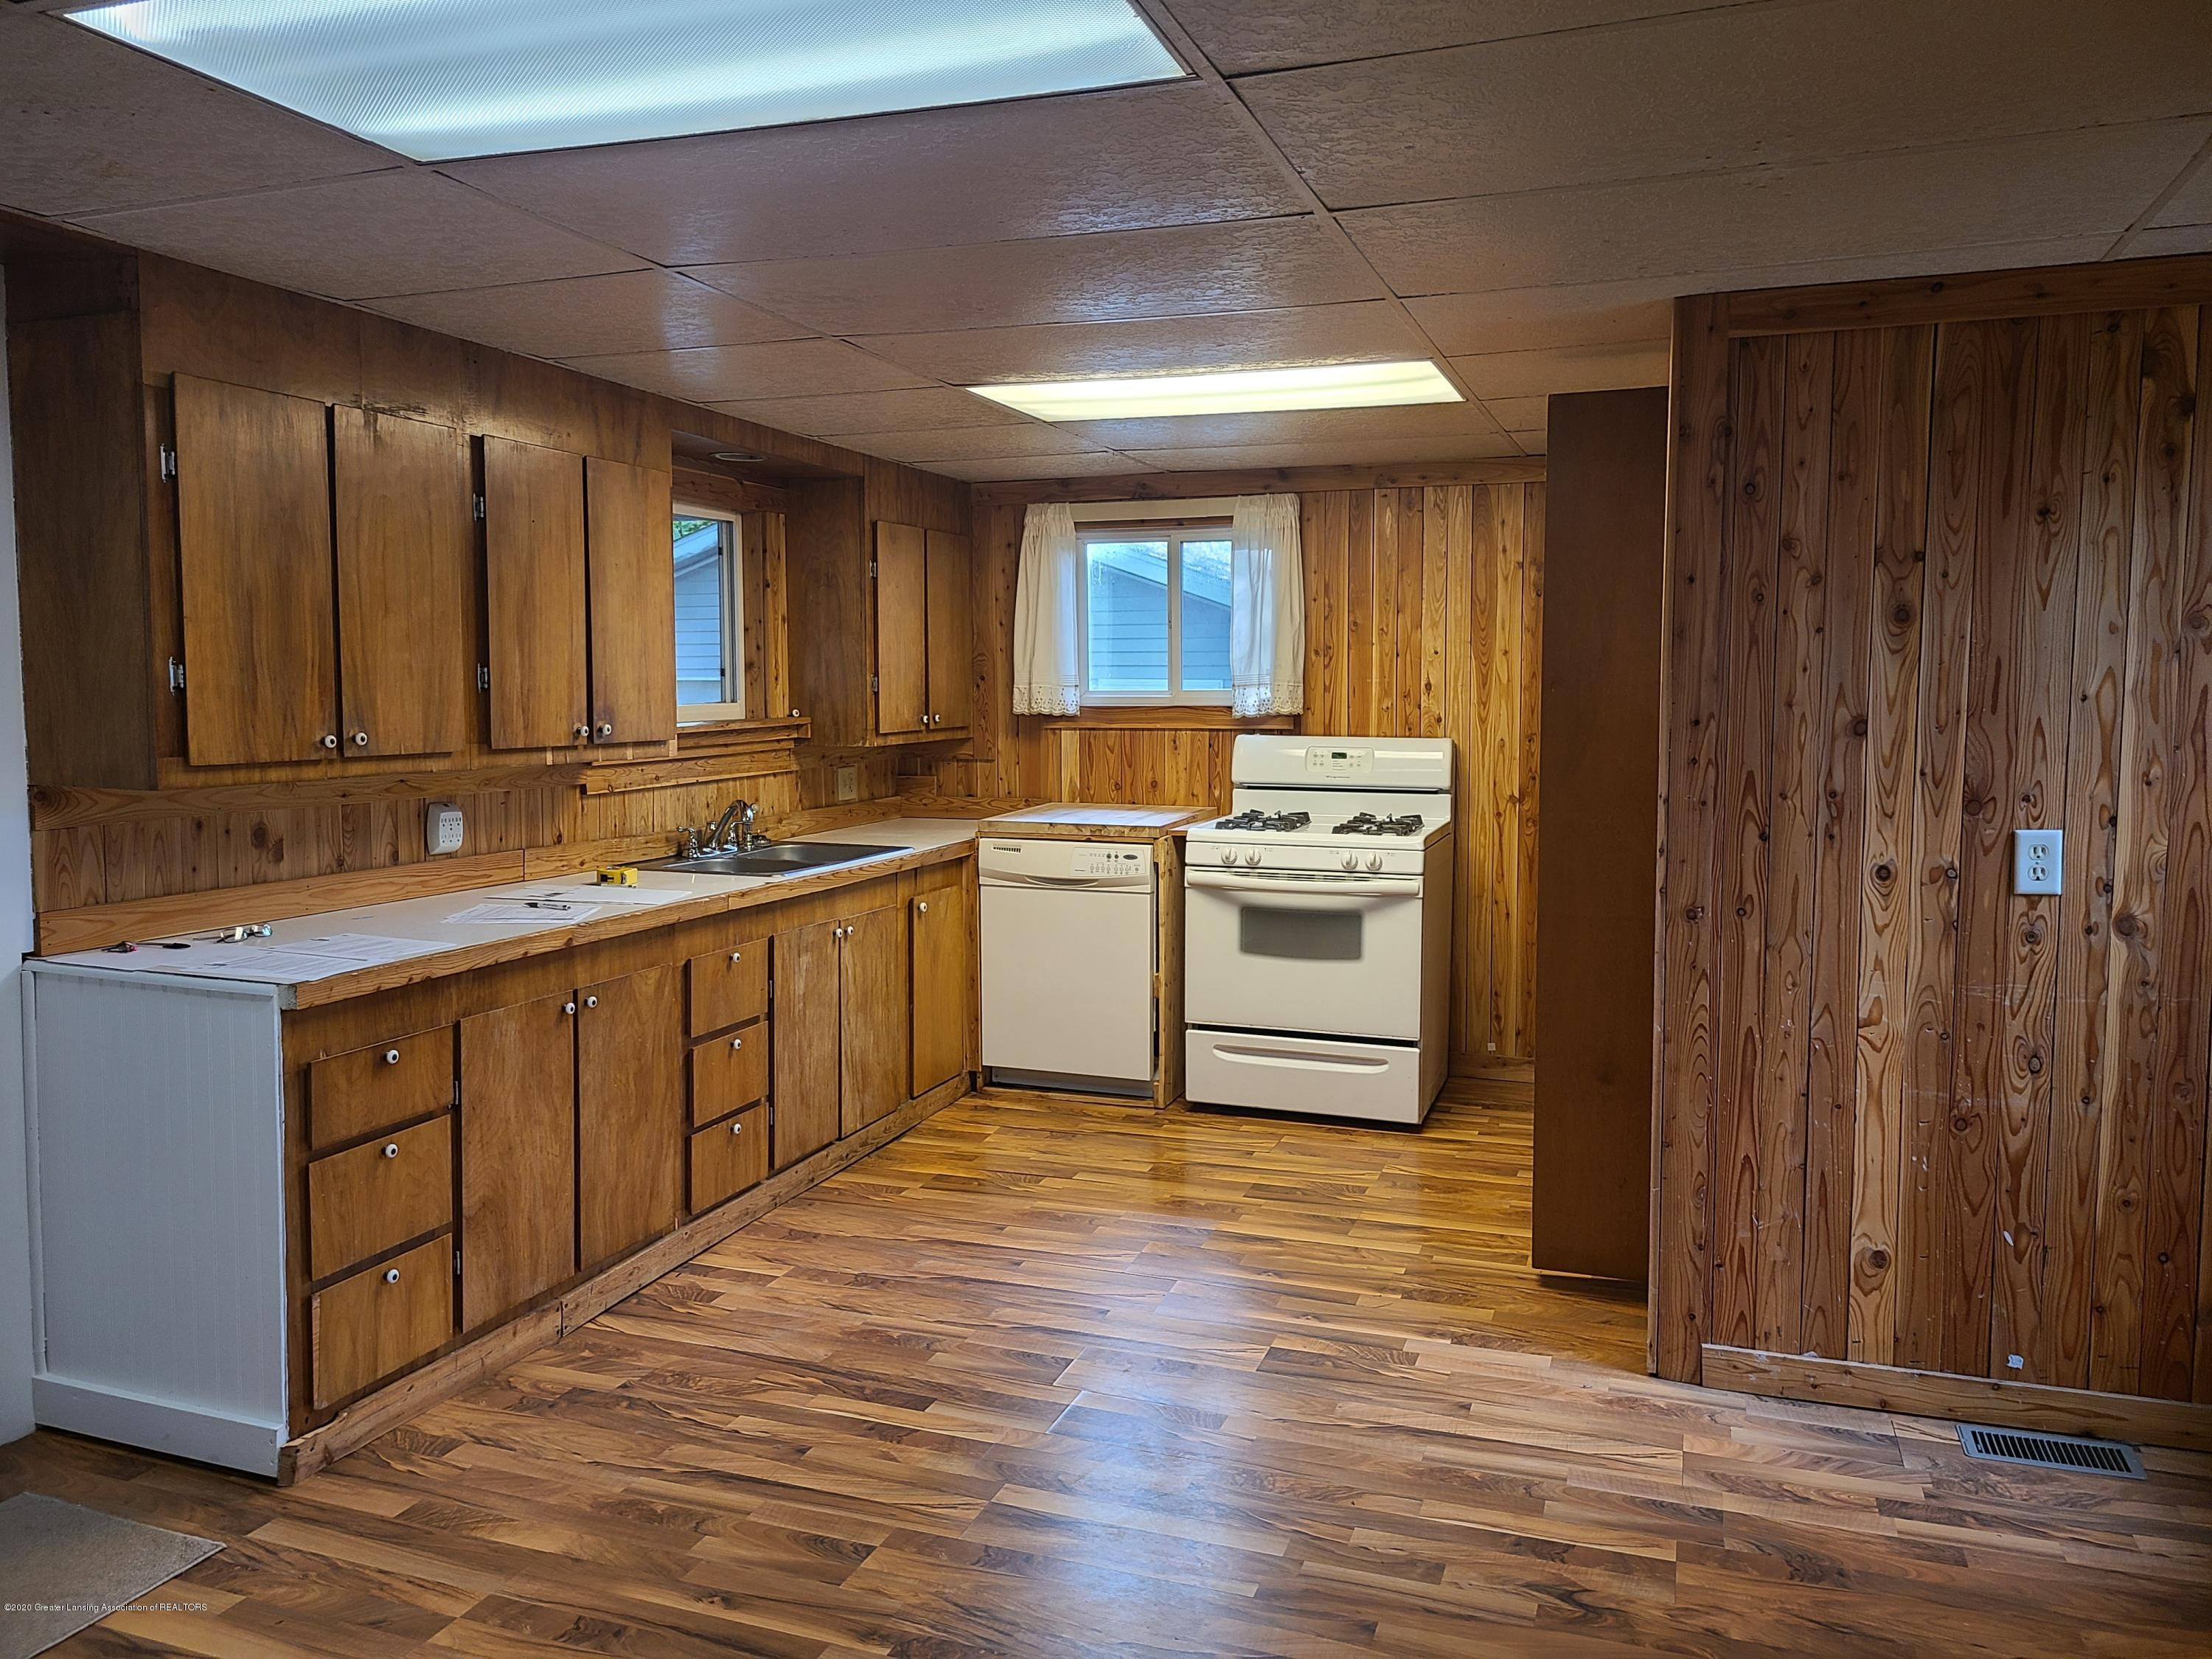 710 Summit St - KITCHEN - 6